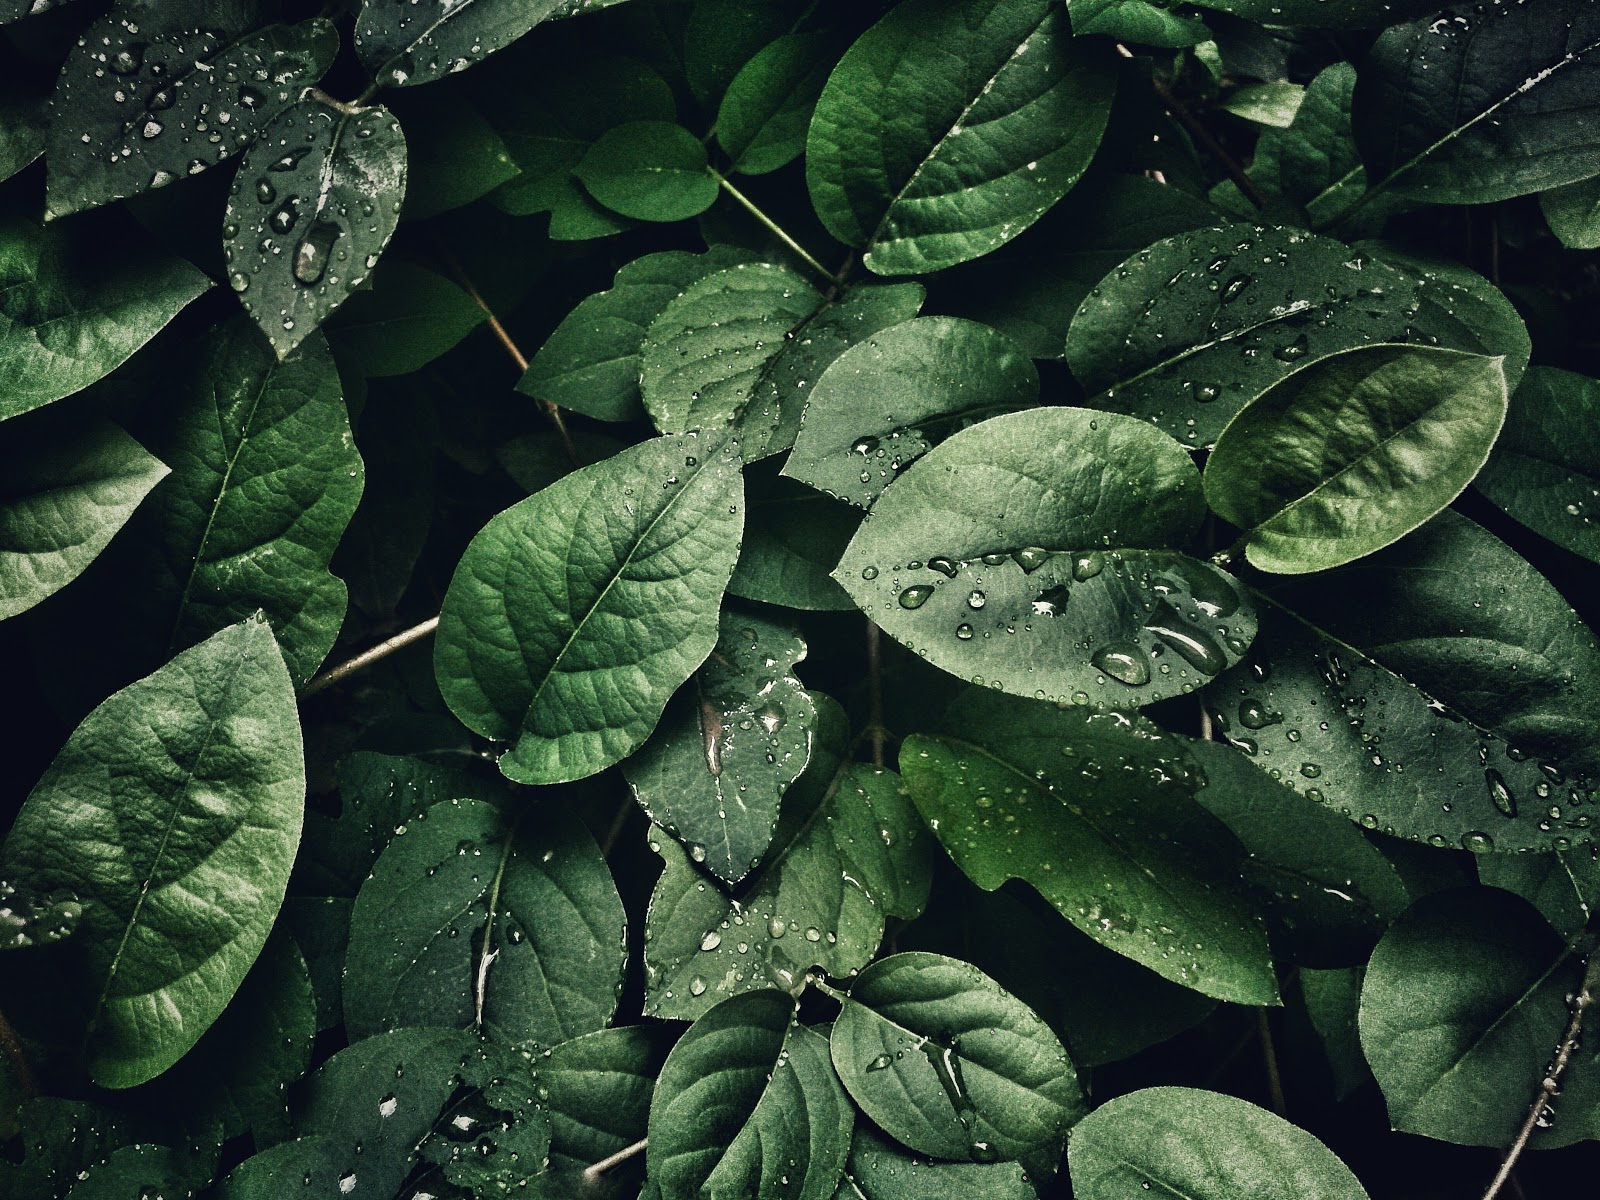 Close Up Photography of Leaves with Droplets